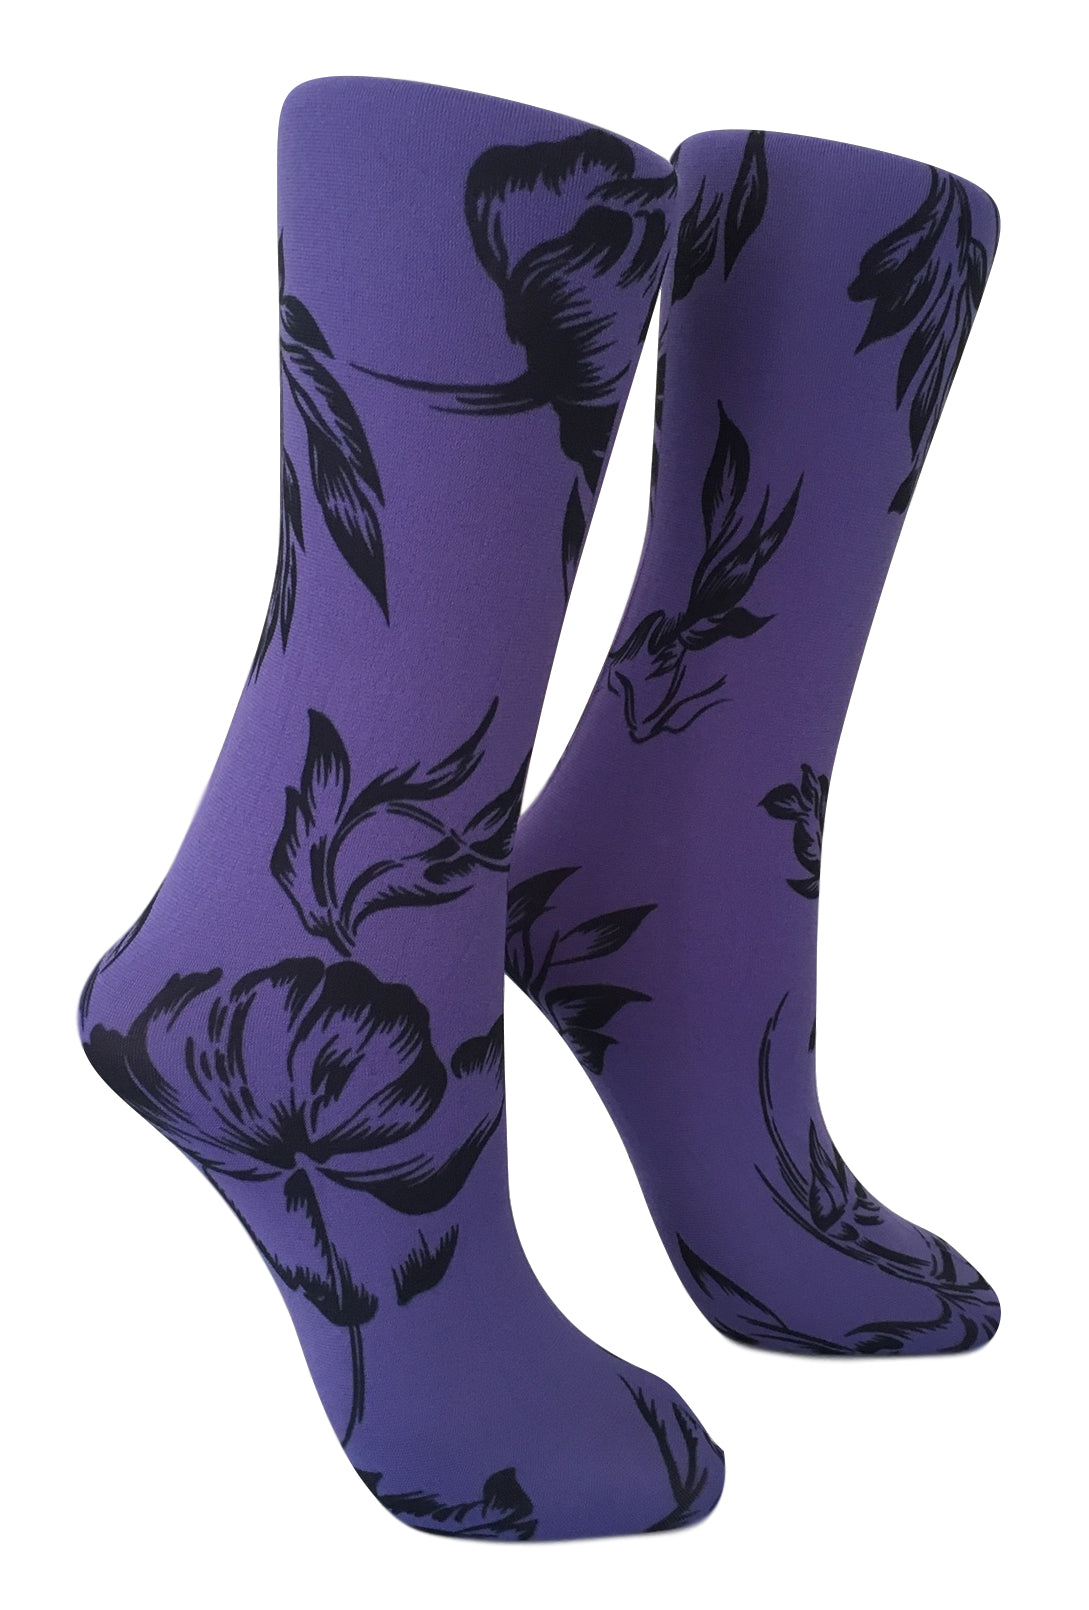 Soxtrot Knee High - Floral Etching